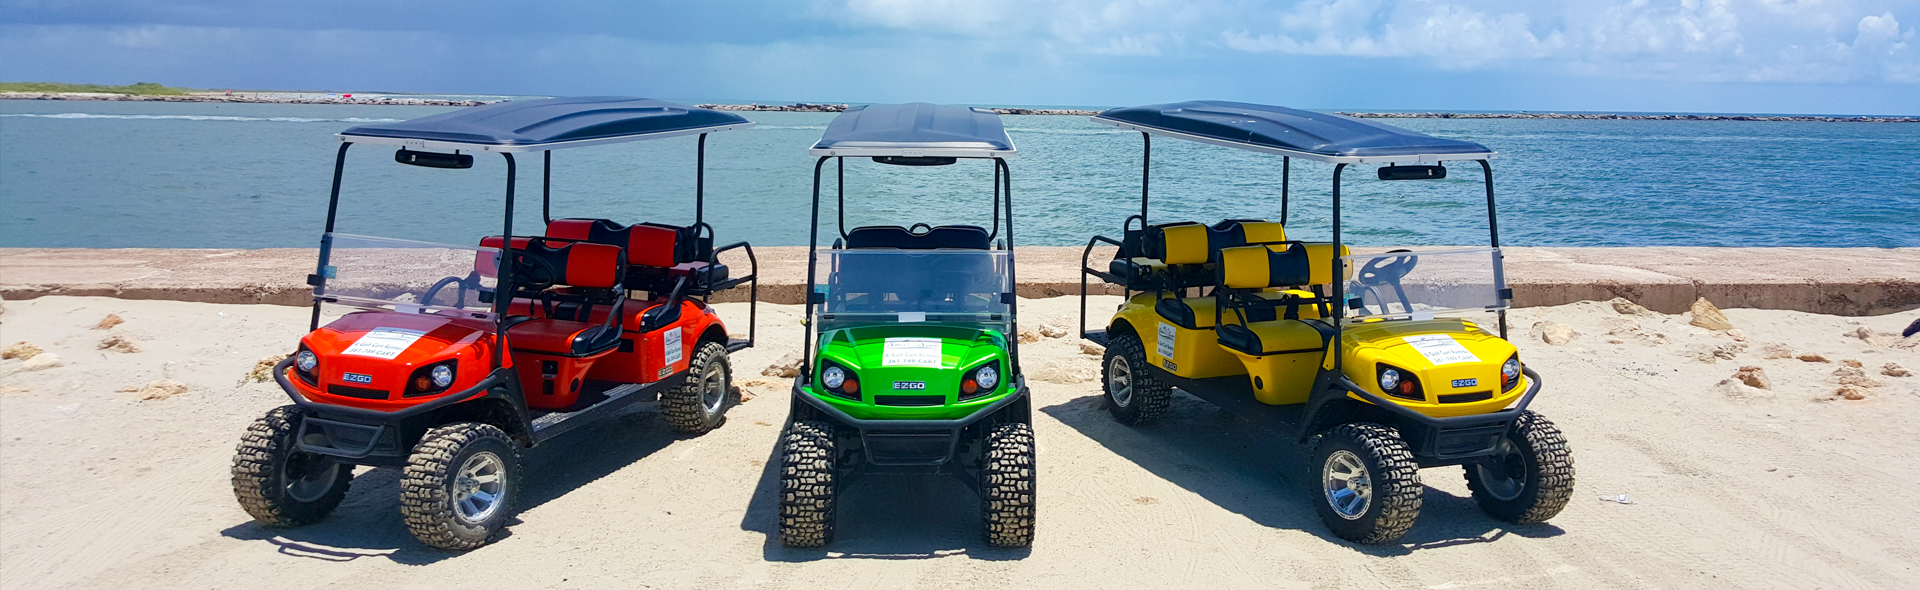 3 golf carts from Silver Sands Golf Cart Rentals at the Port Aransas jetty